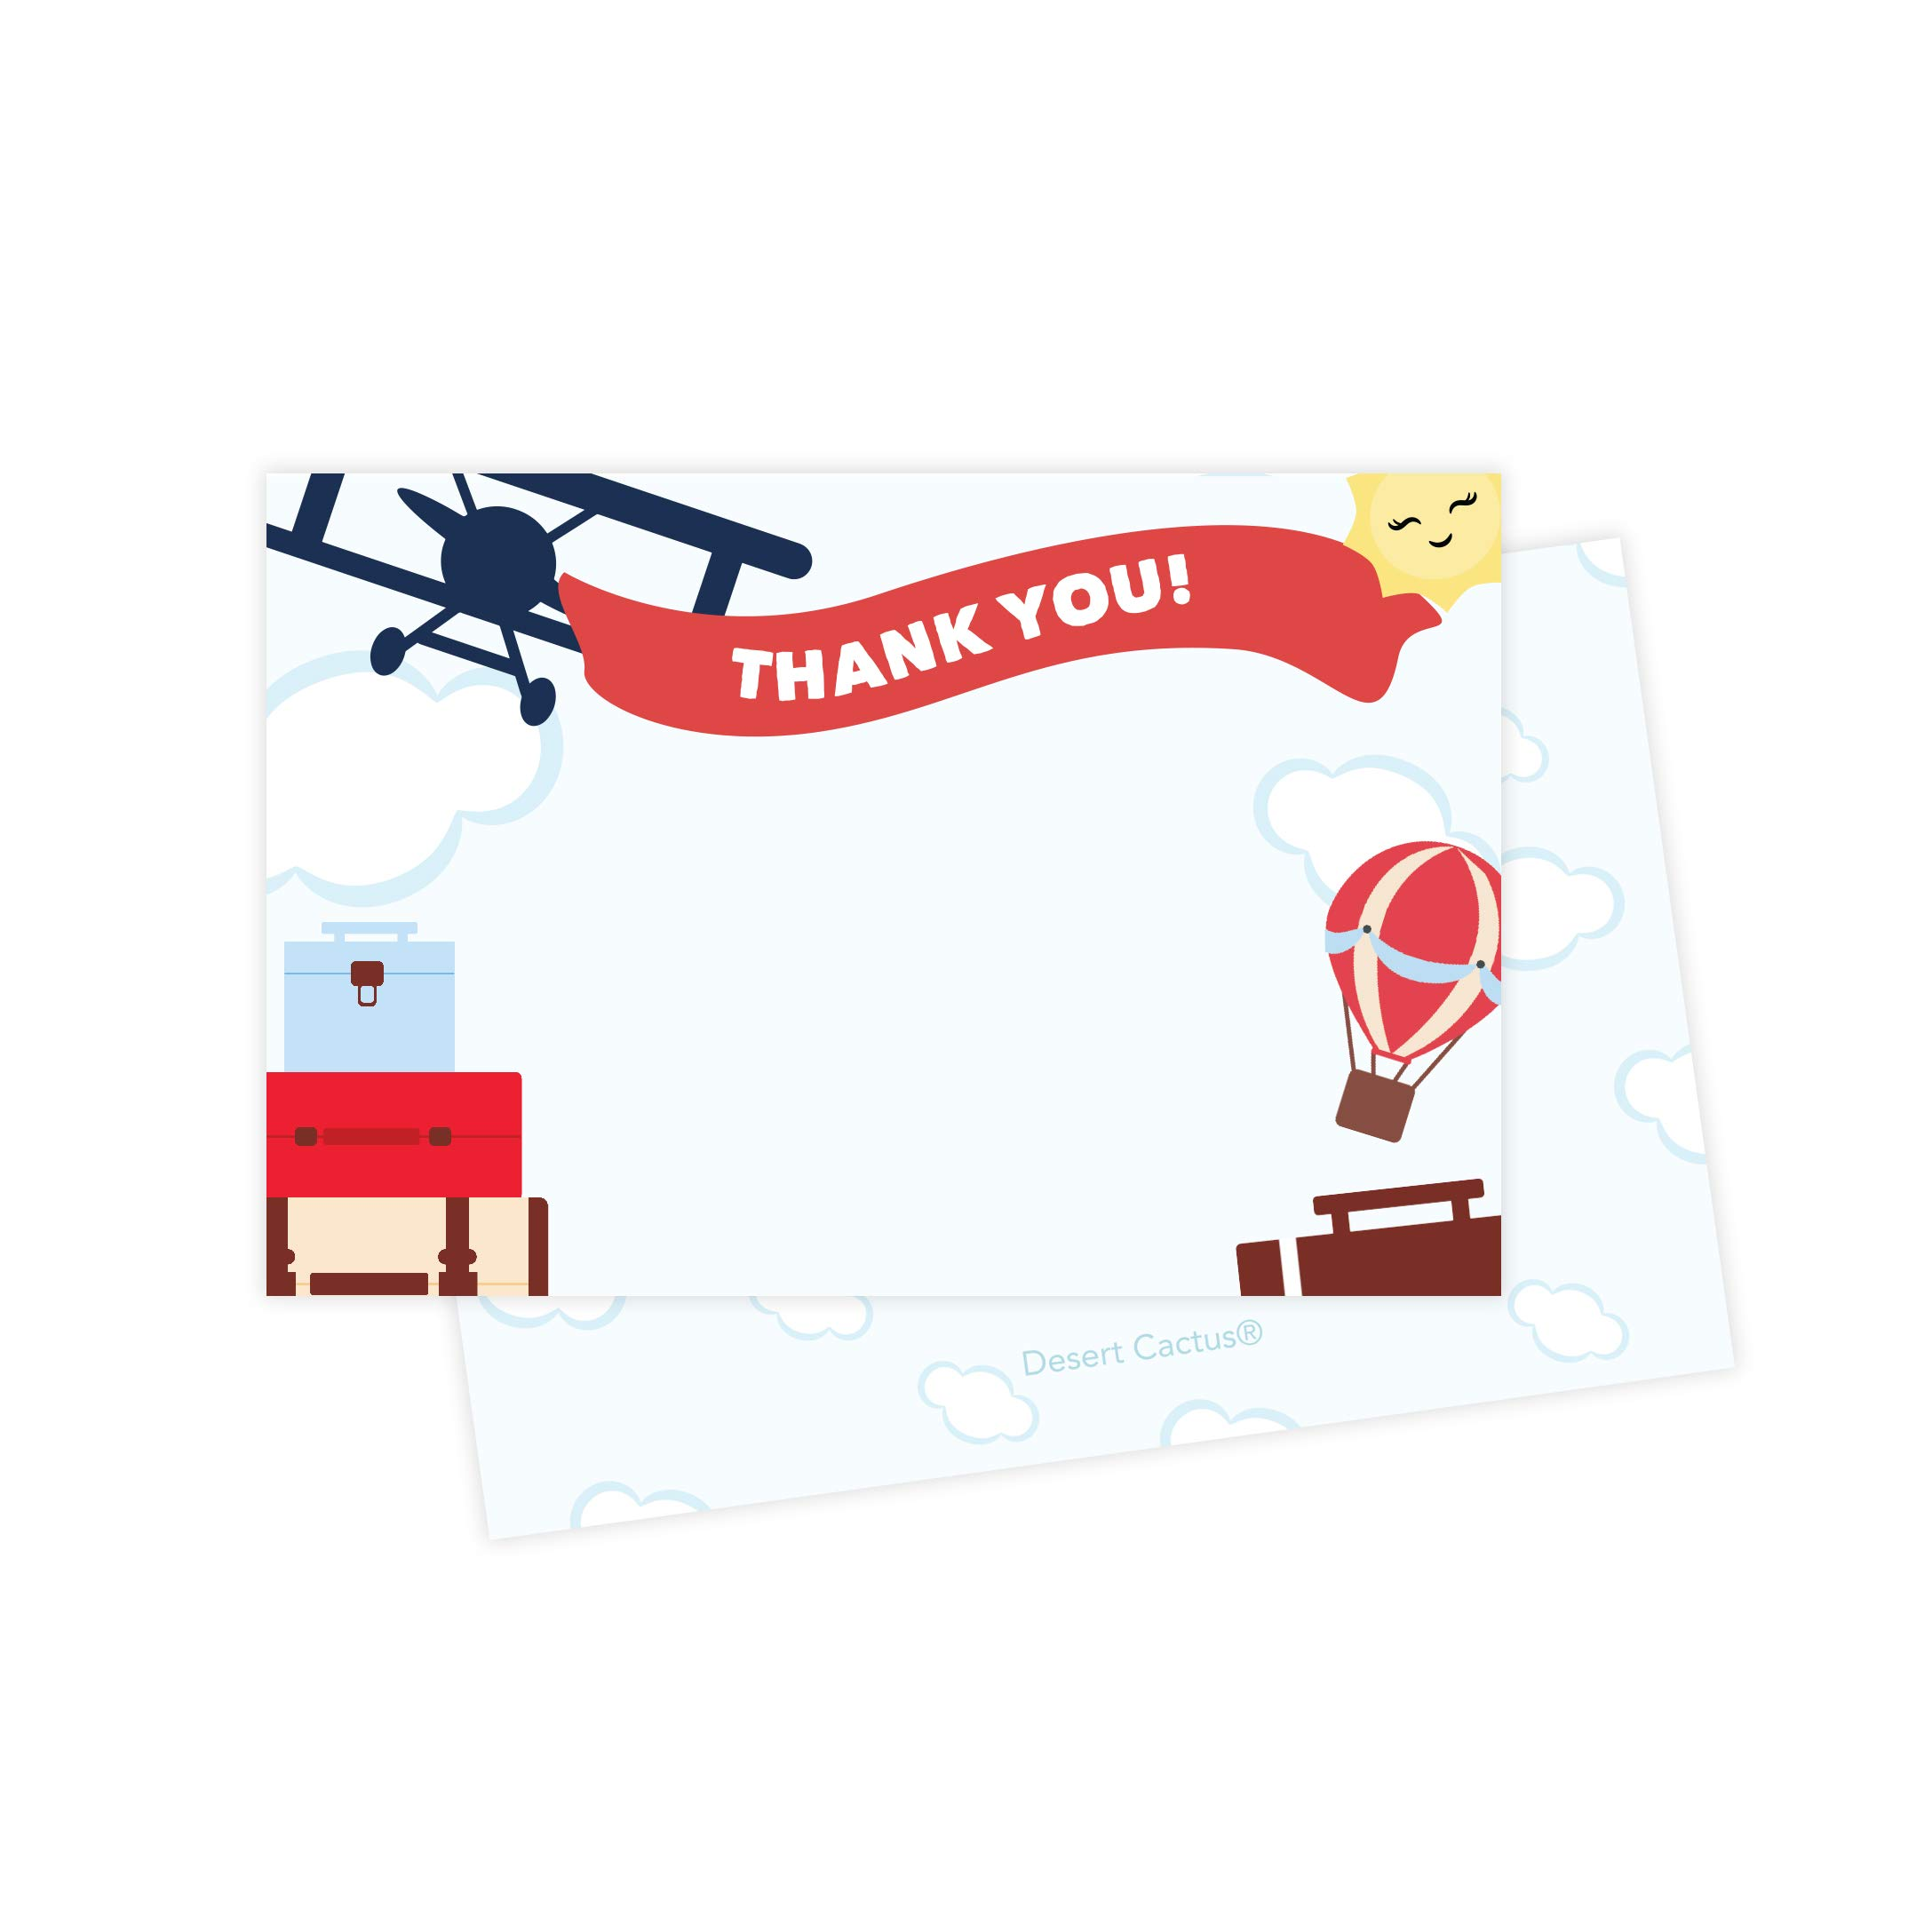 Airplane #1-25 Invitations & 25 Thank You Cards Combo Pack Happy Birthday Invite Cards With Envelopes & Seal Stickers Boys Girls Kids Party (Combo Pack) by Desert Cactus (Image #5)